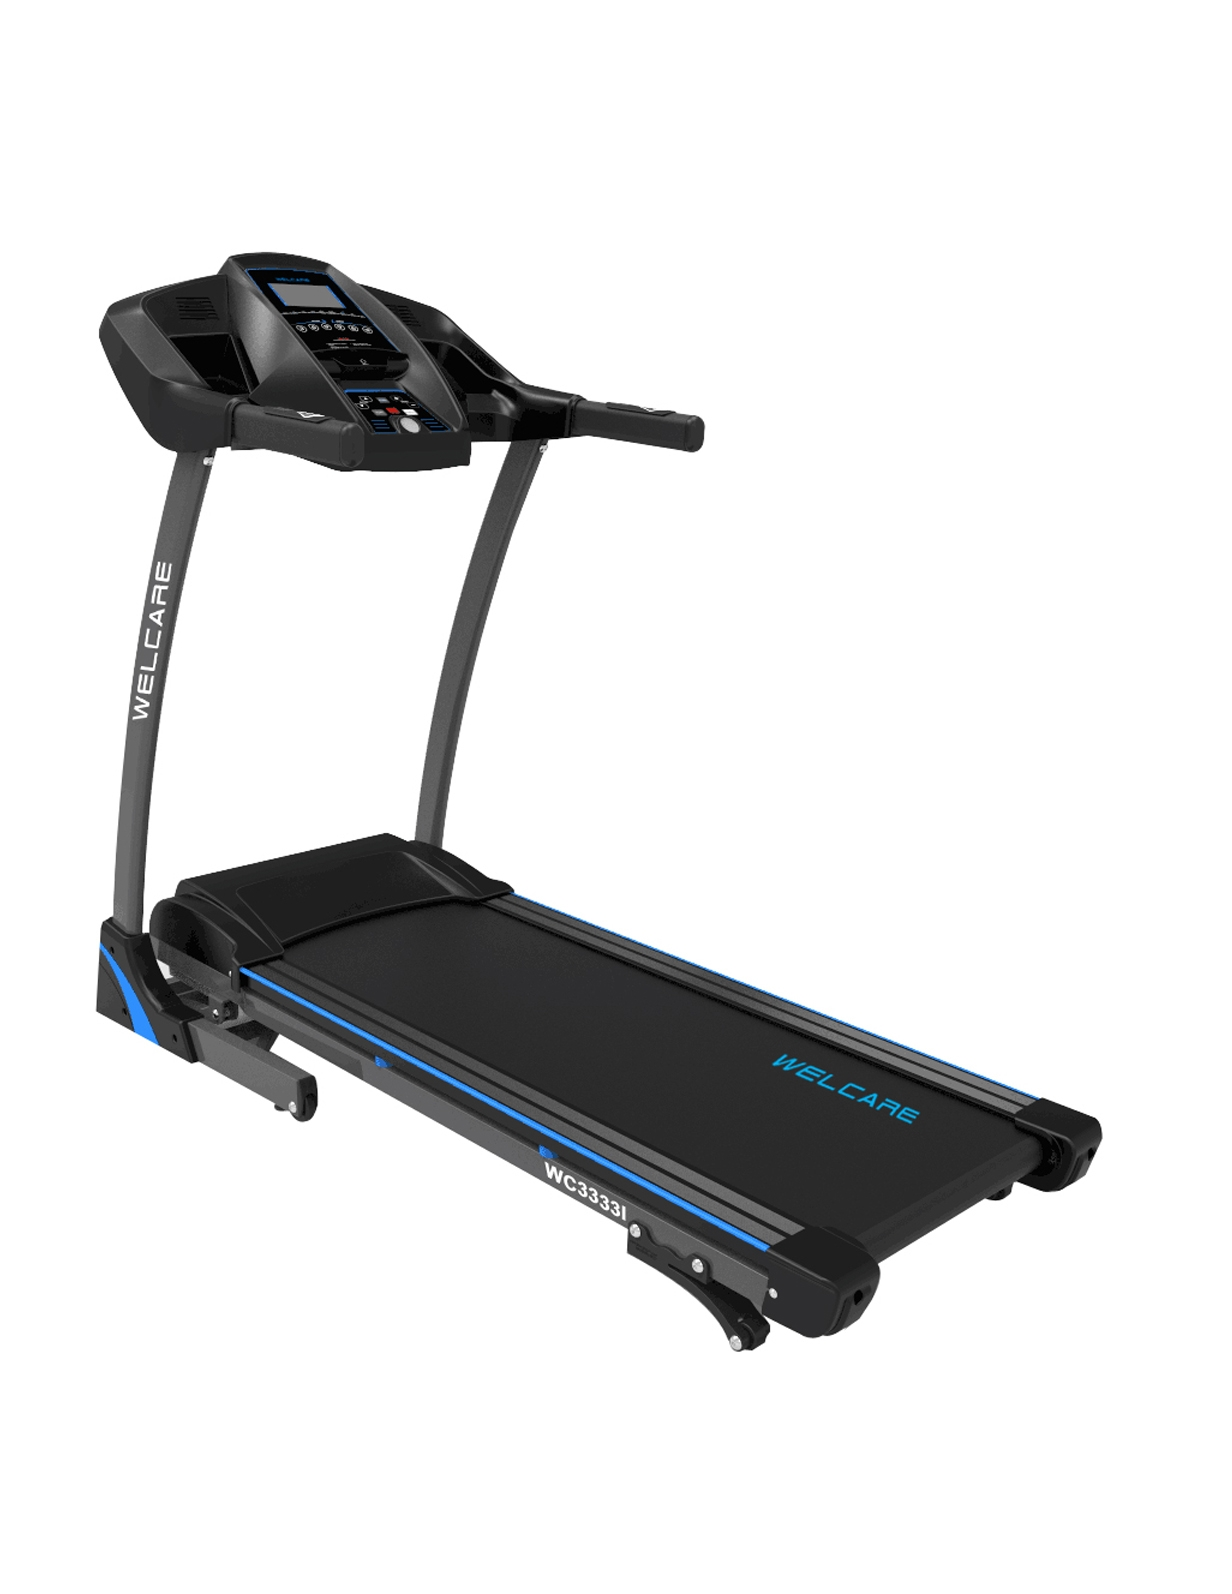 WC 3333I MOTORIZED TREADMILL